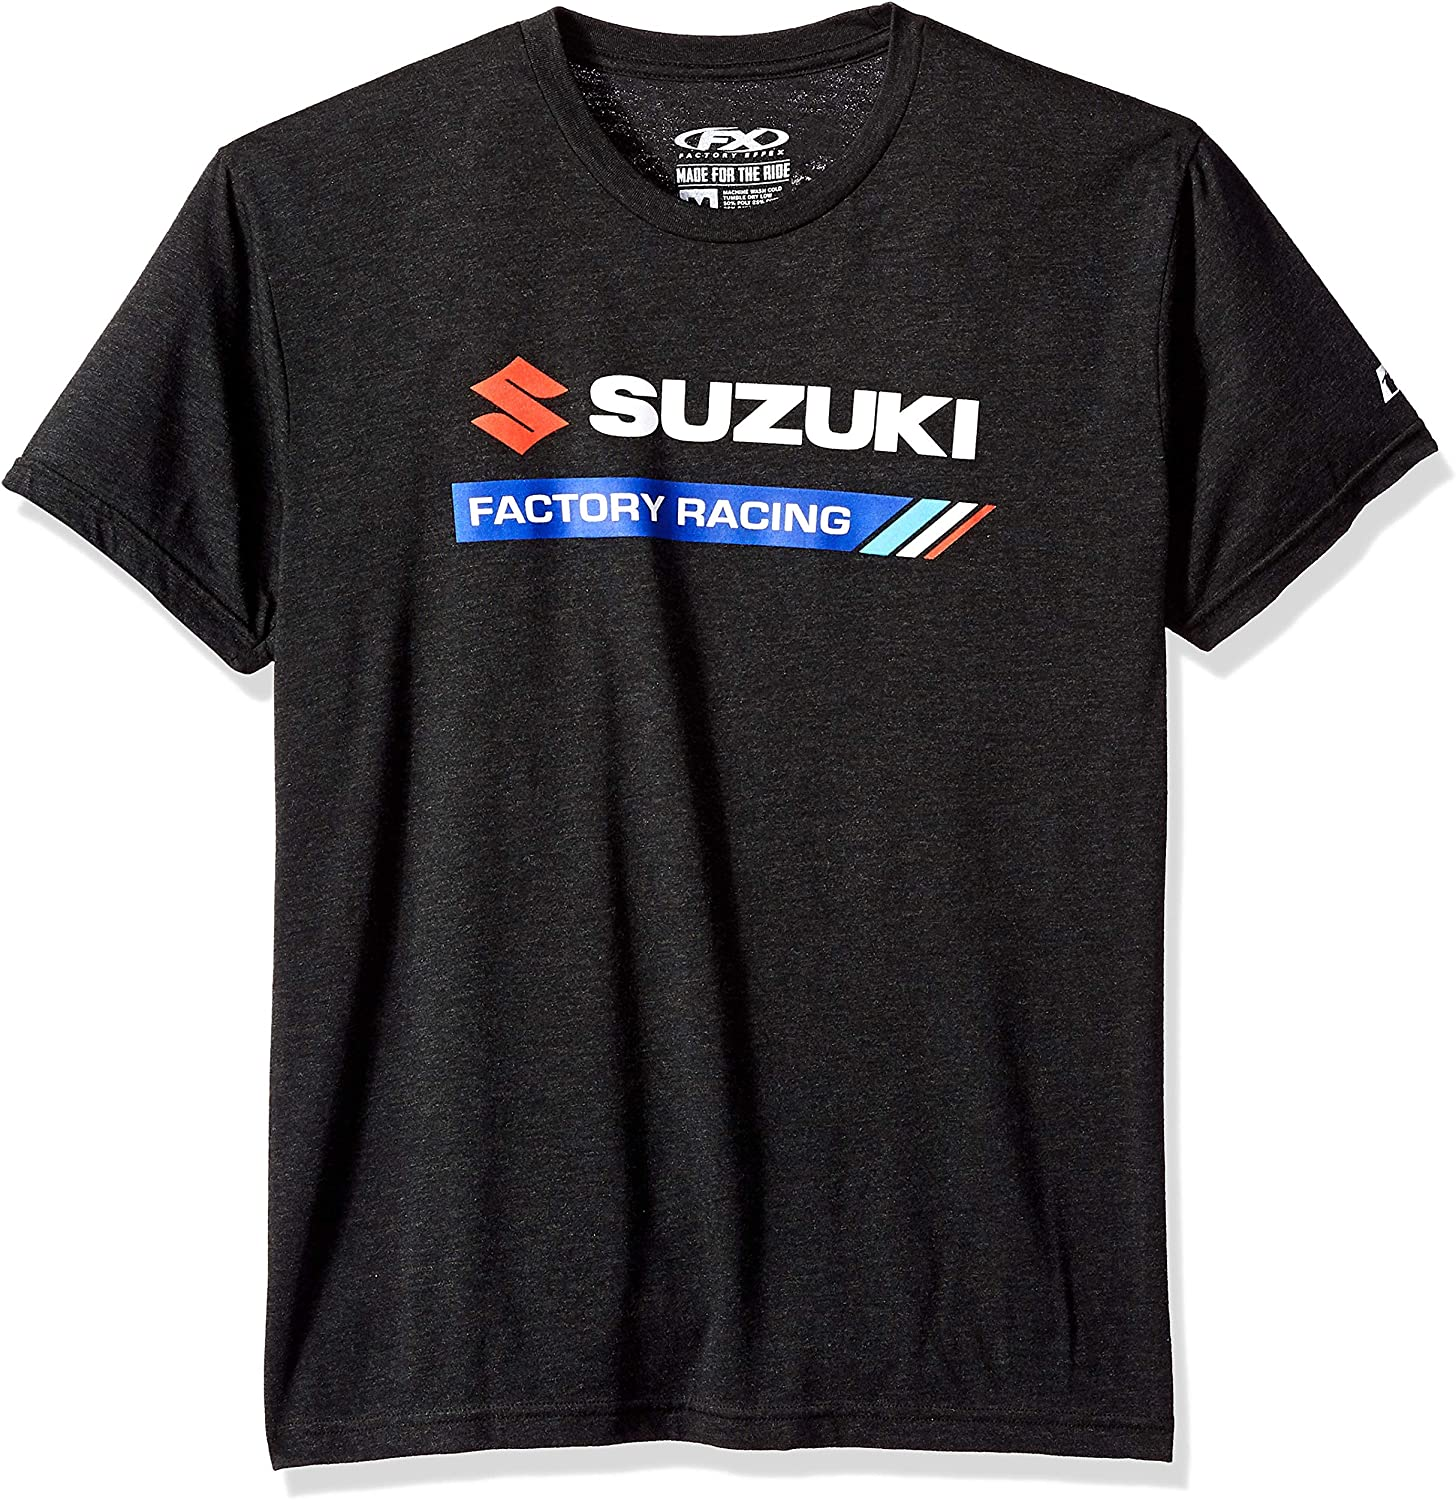 Medium, Heather Black Factory Effex Suzuki Factory Racing T-Shirt